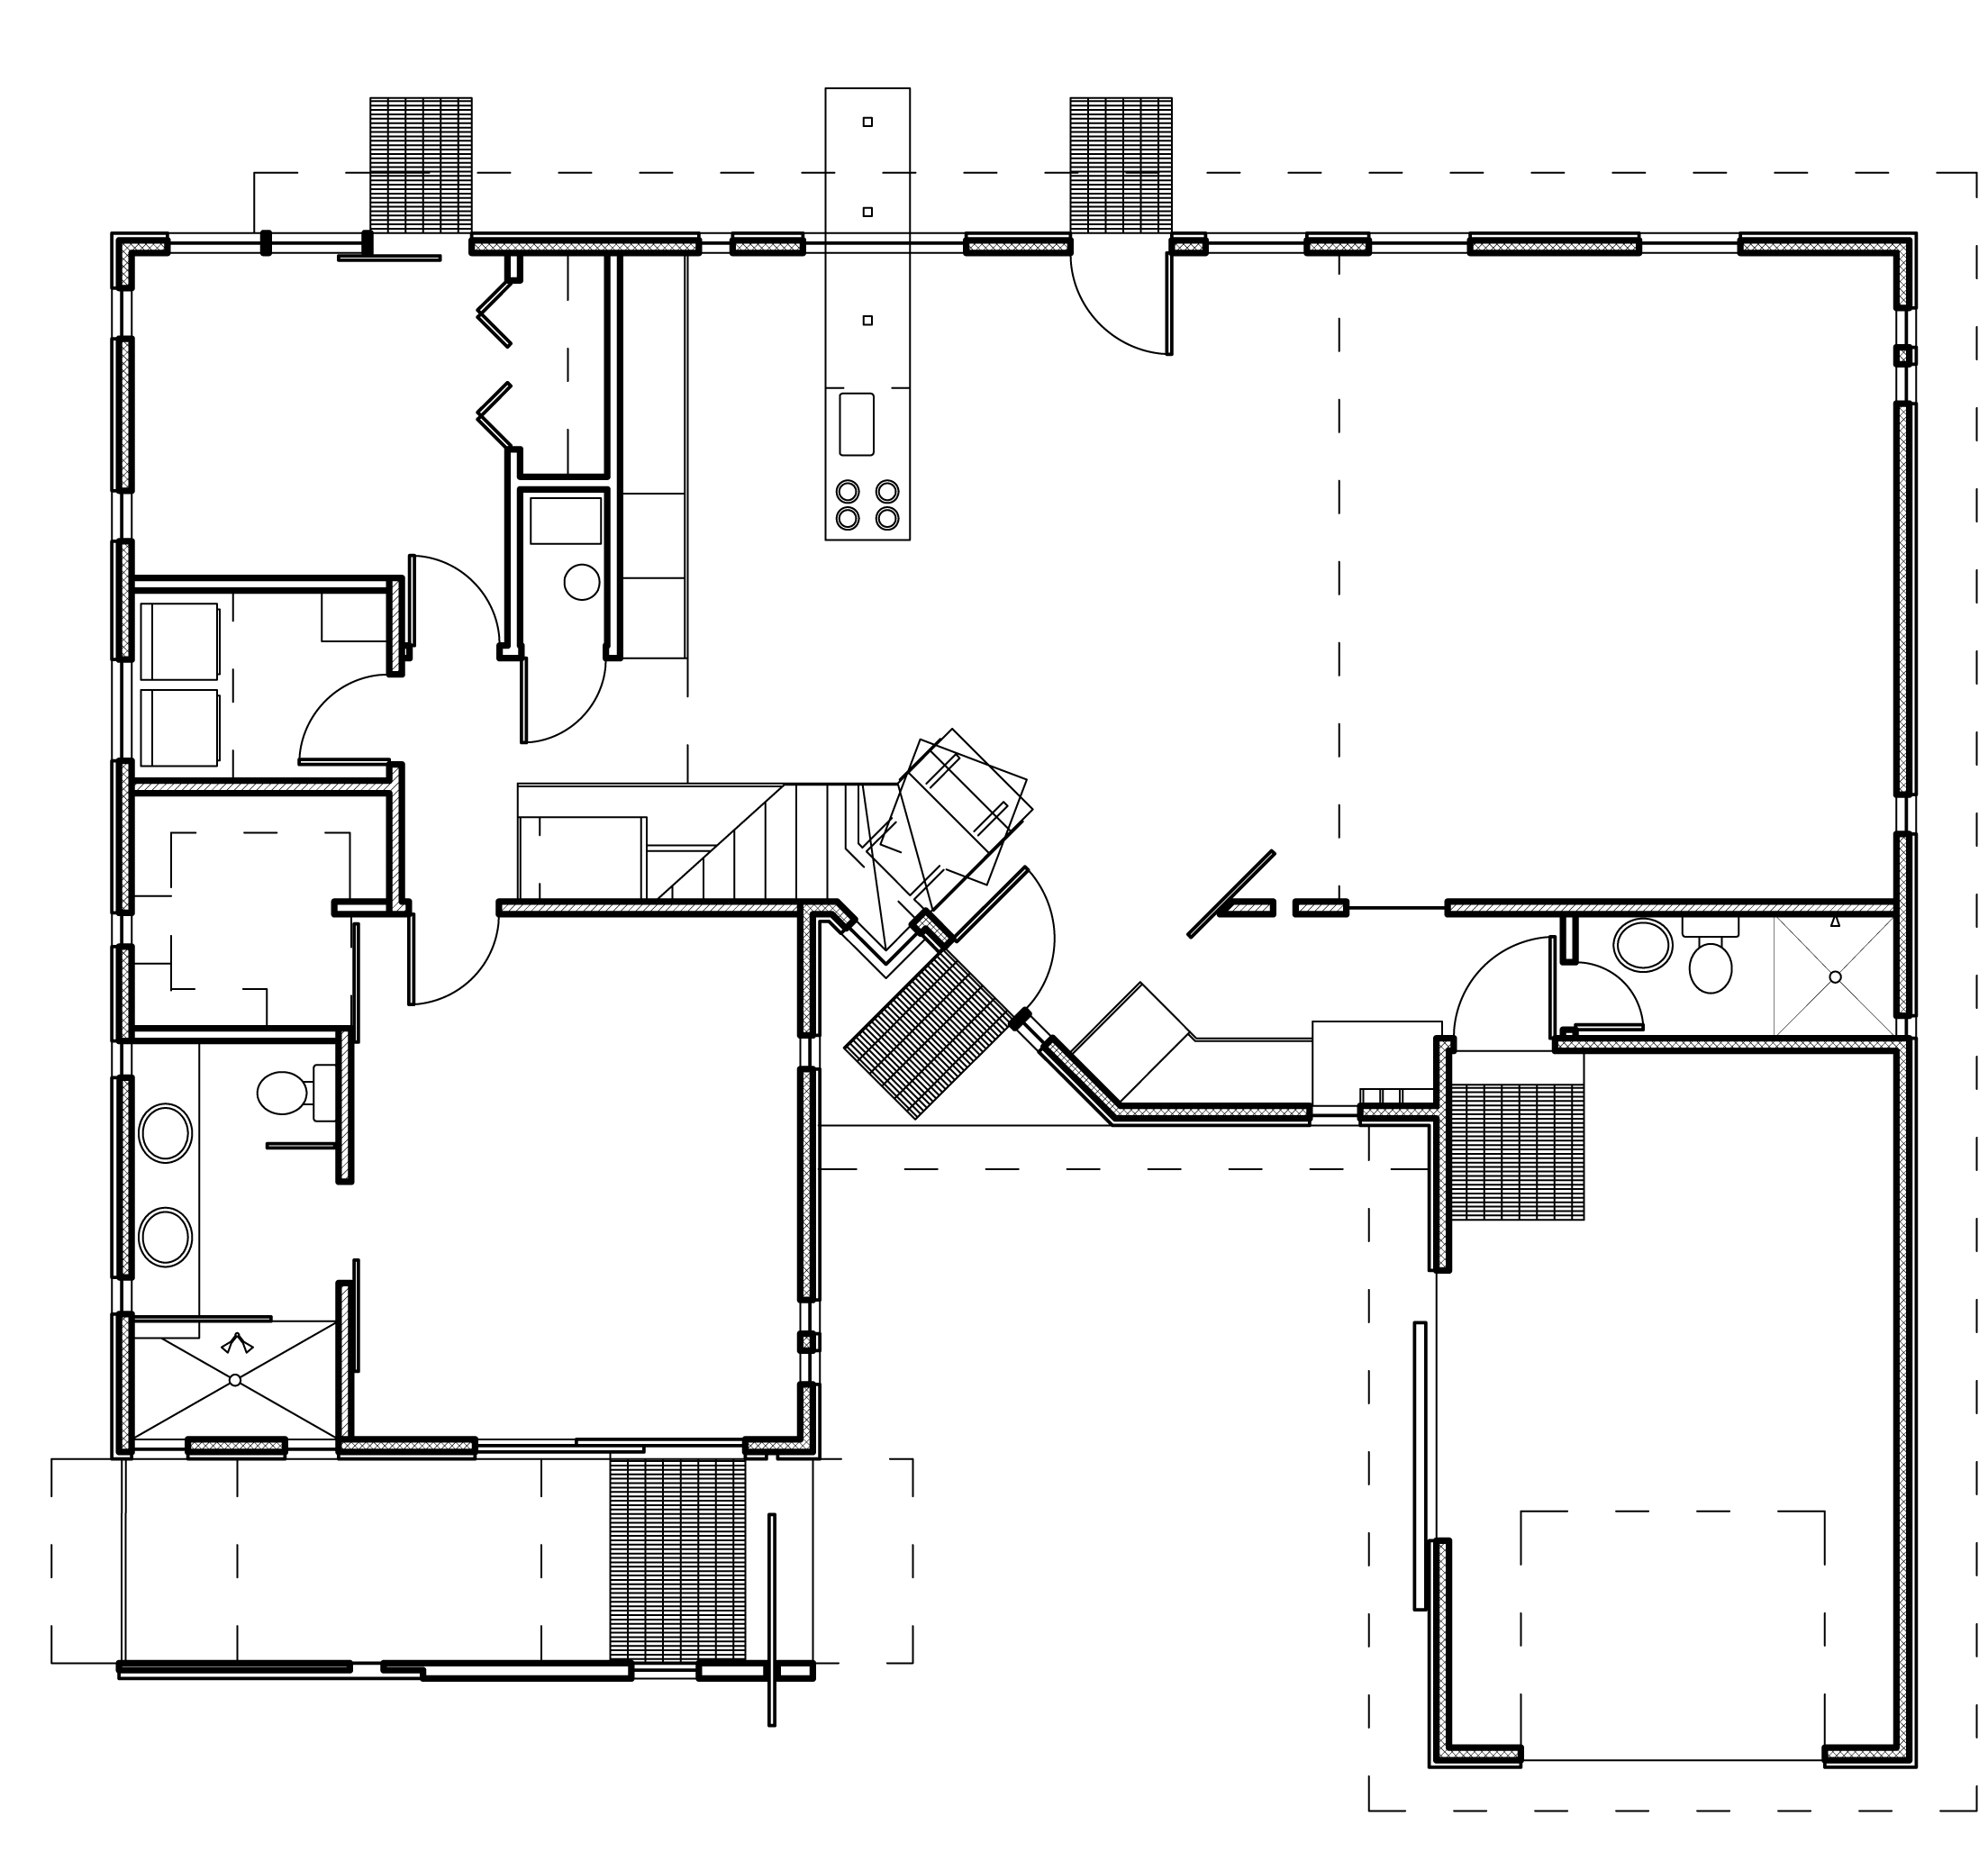 Modern house plans contemporary home designs floor plan 03 for Cool modern house designs